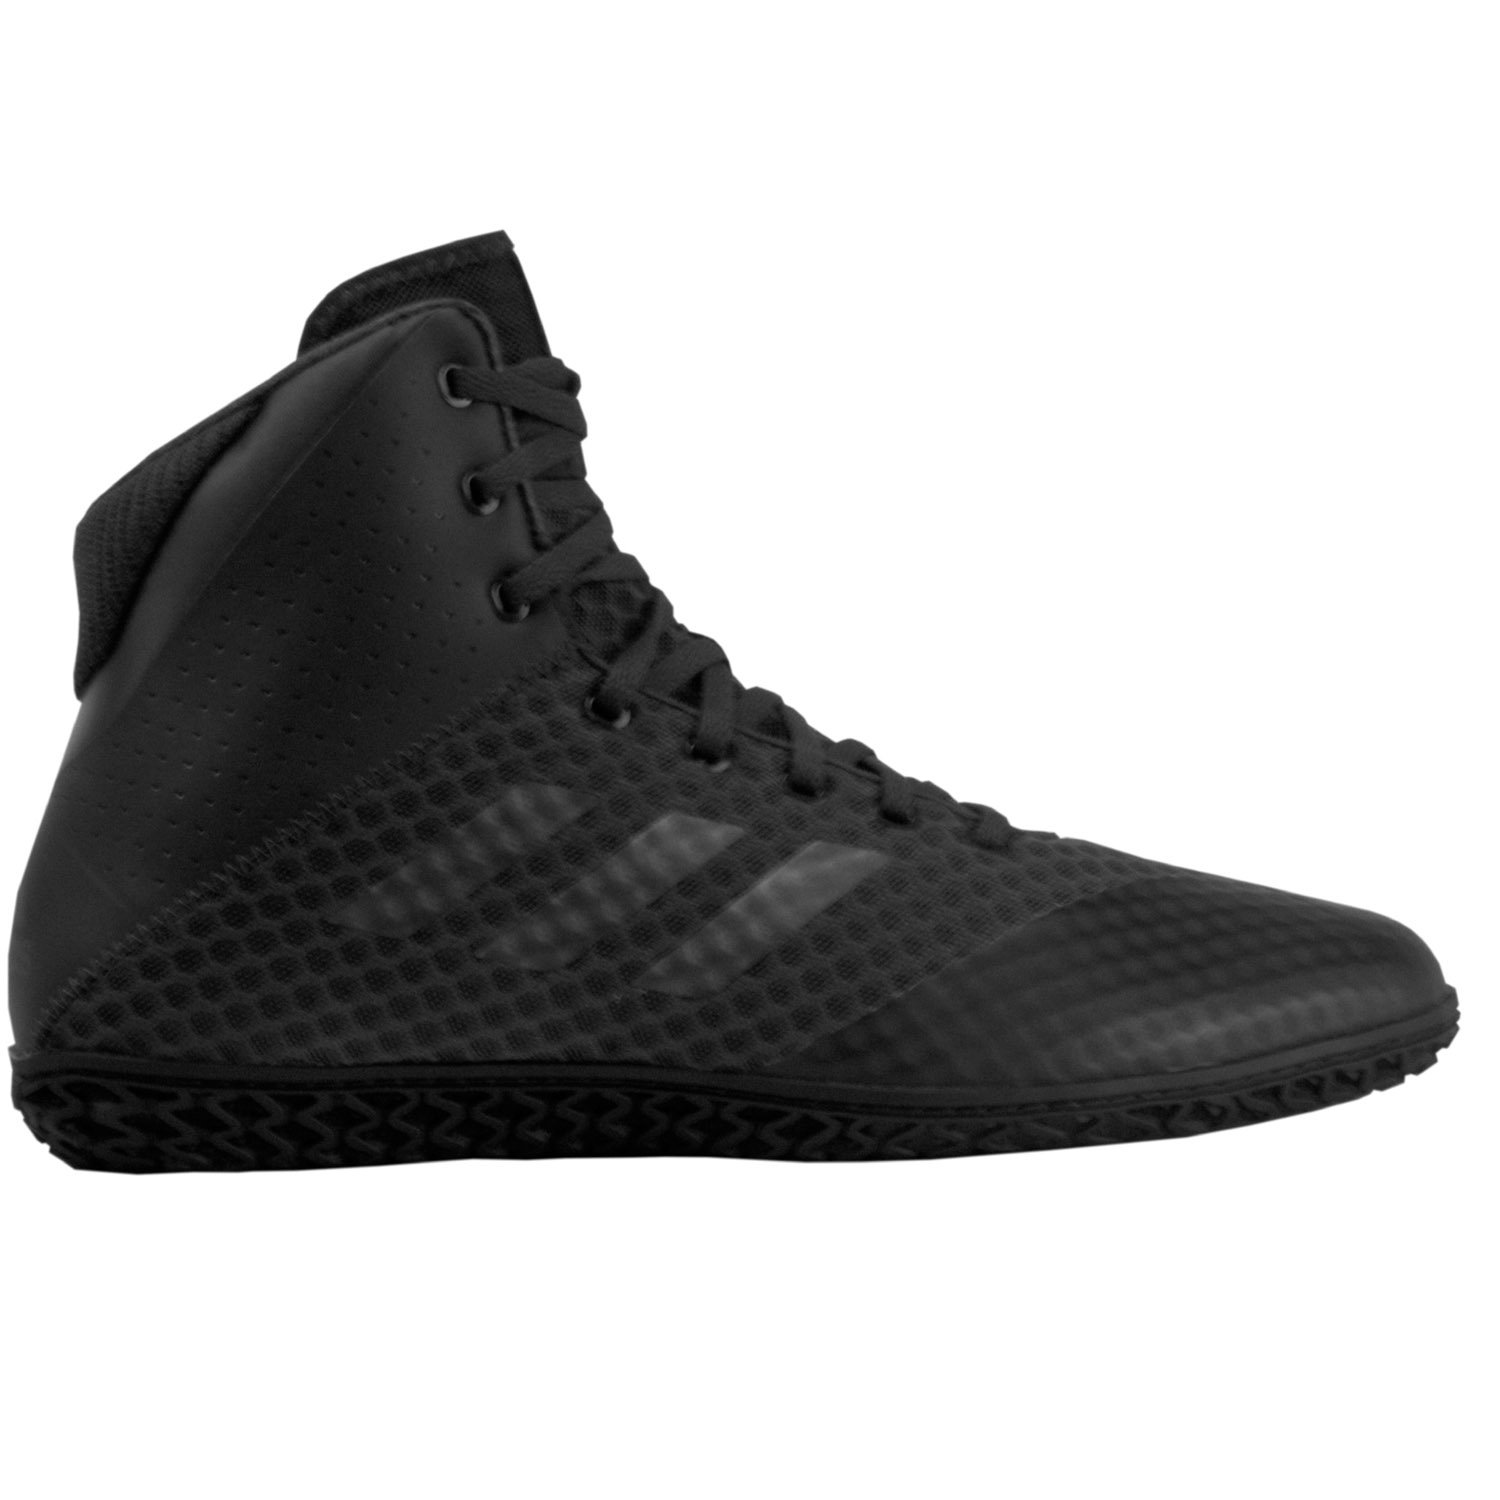 adidas Mat Wizard 4 Men's Wrestling Shoes, Carbon/Black, Size 10.5 by adidas